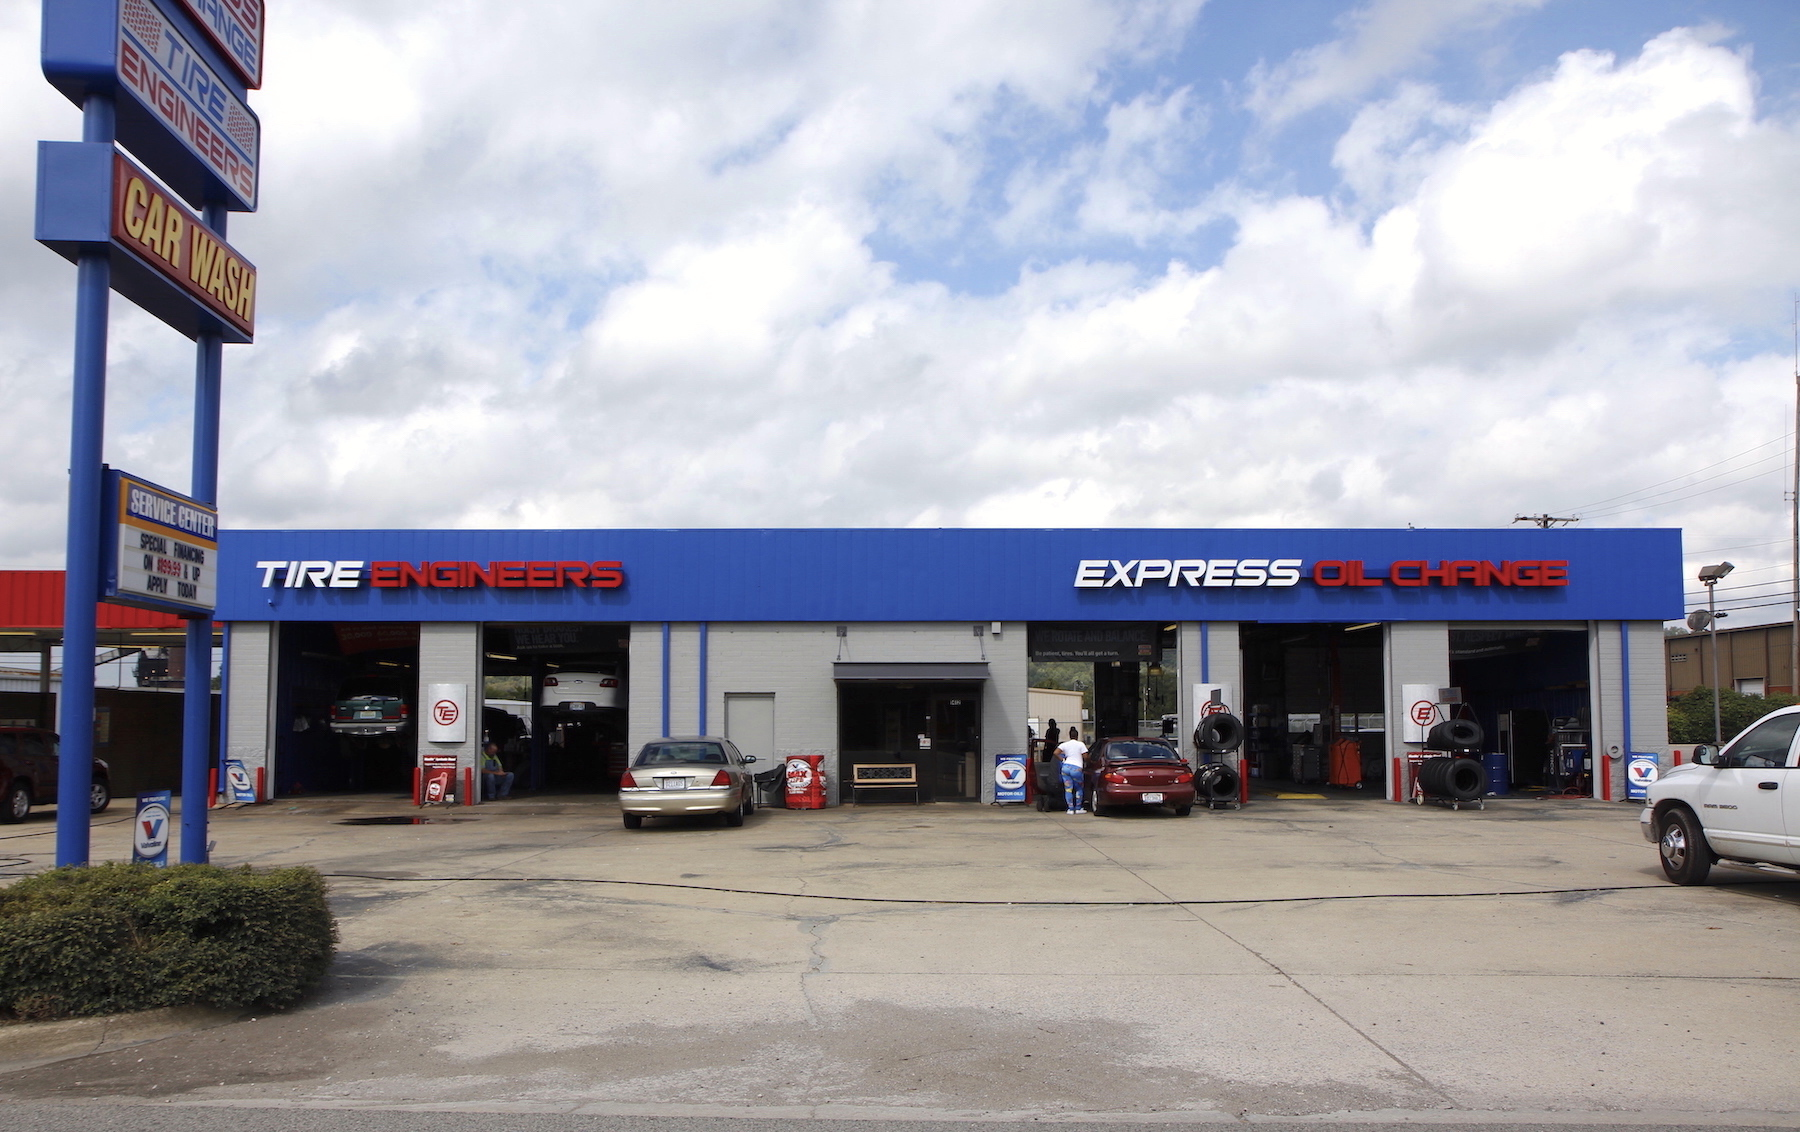 Express Oil Change & Tire Engineers at Birmingham, AL - Tarrant store